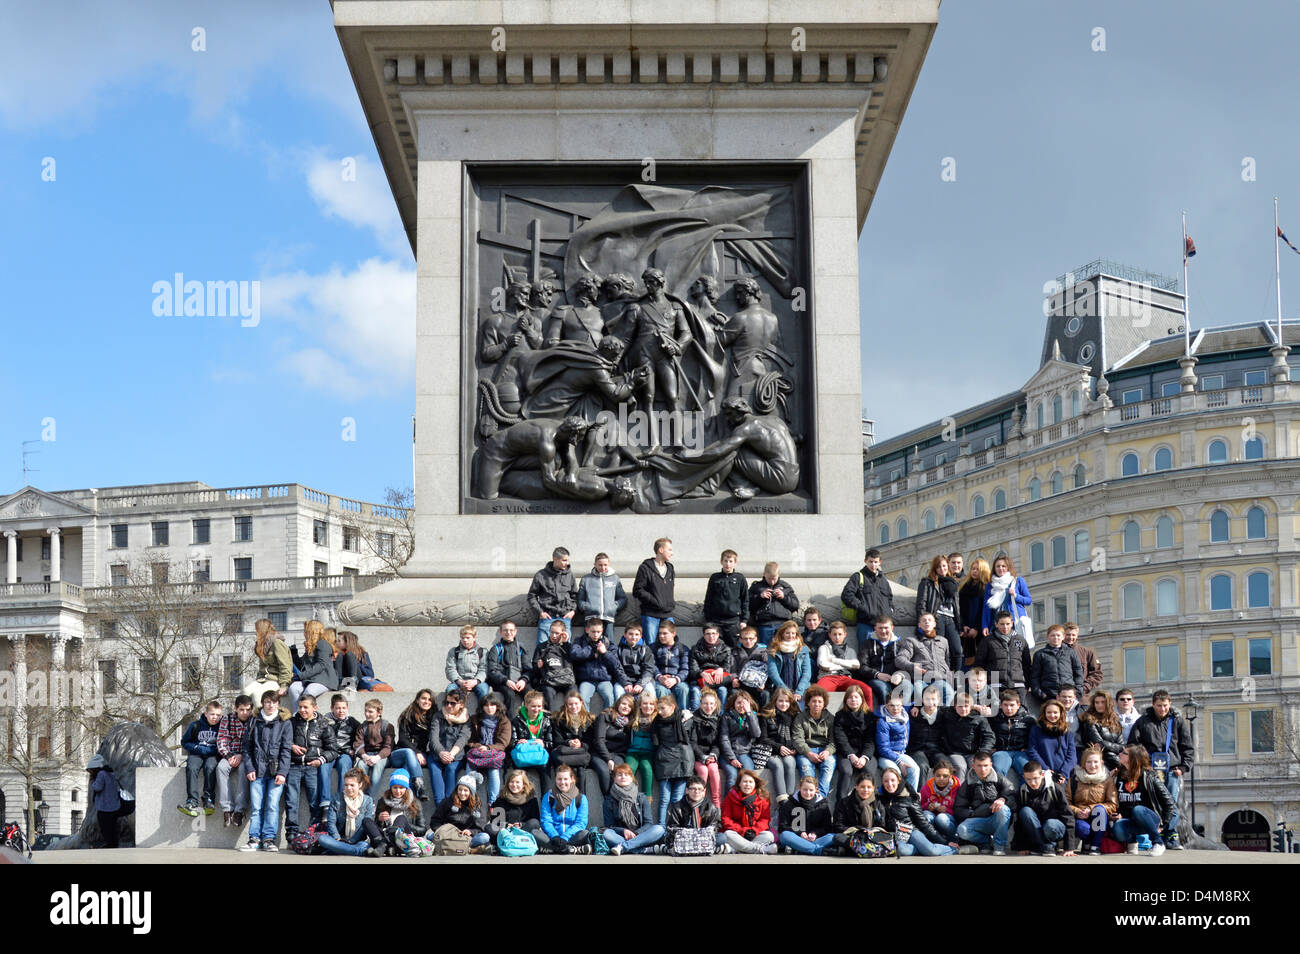 Children on school trip posing for large group photo on Nelsons Column plinth - Stock Image